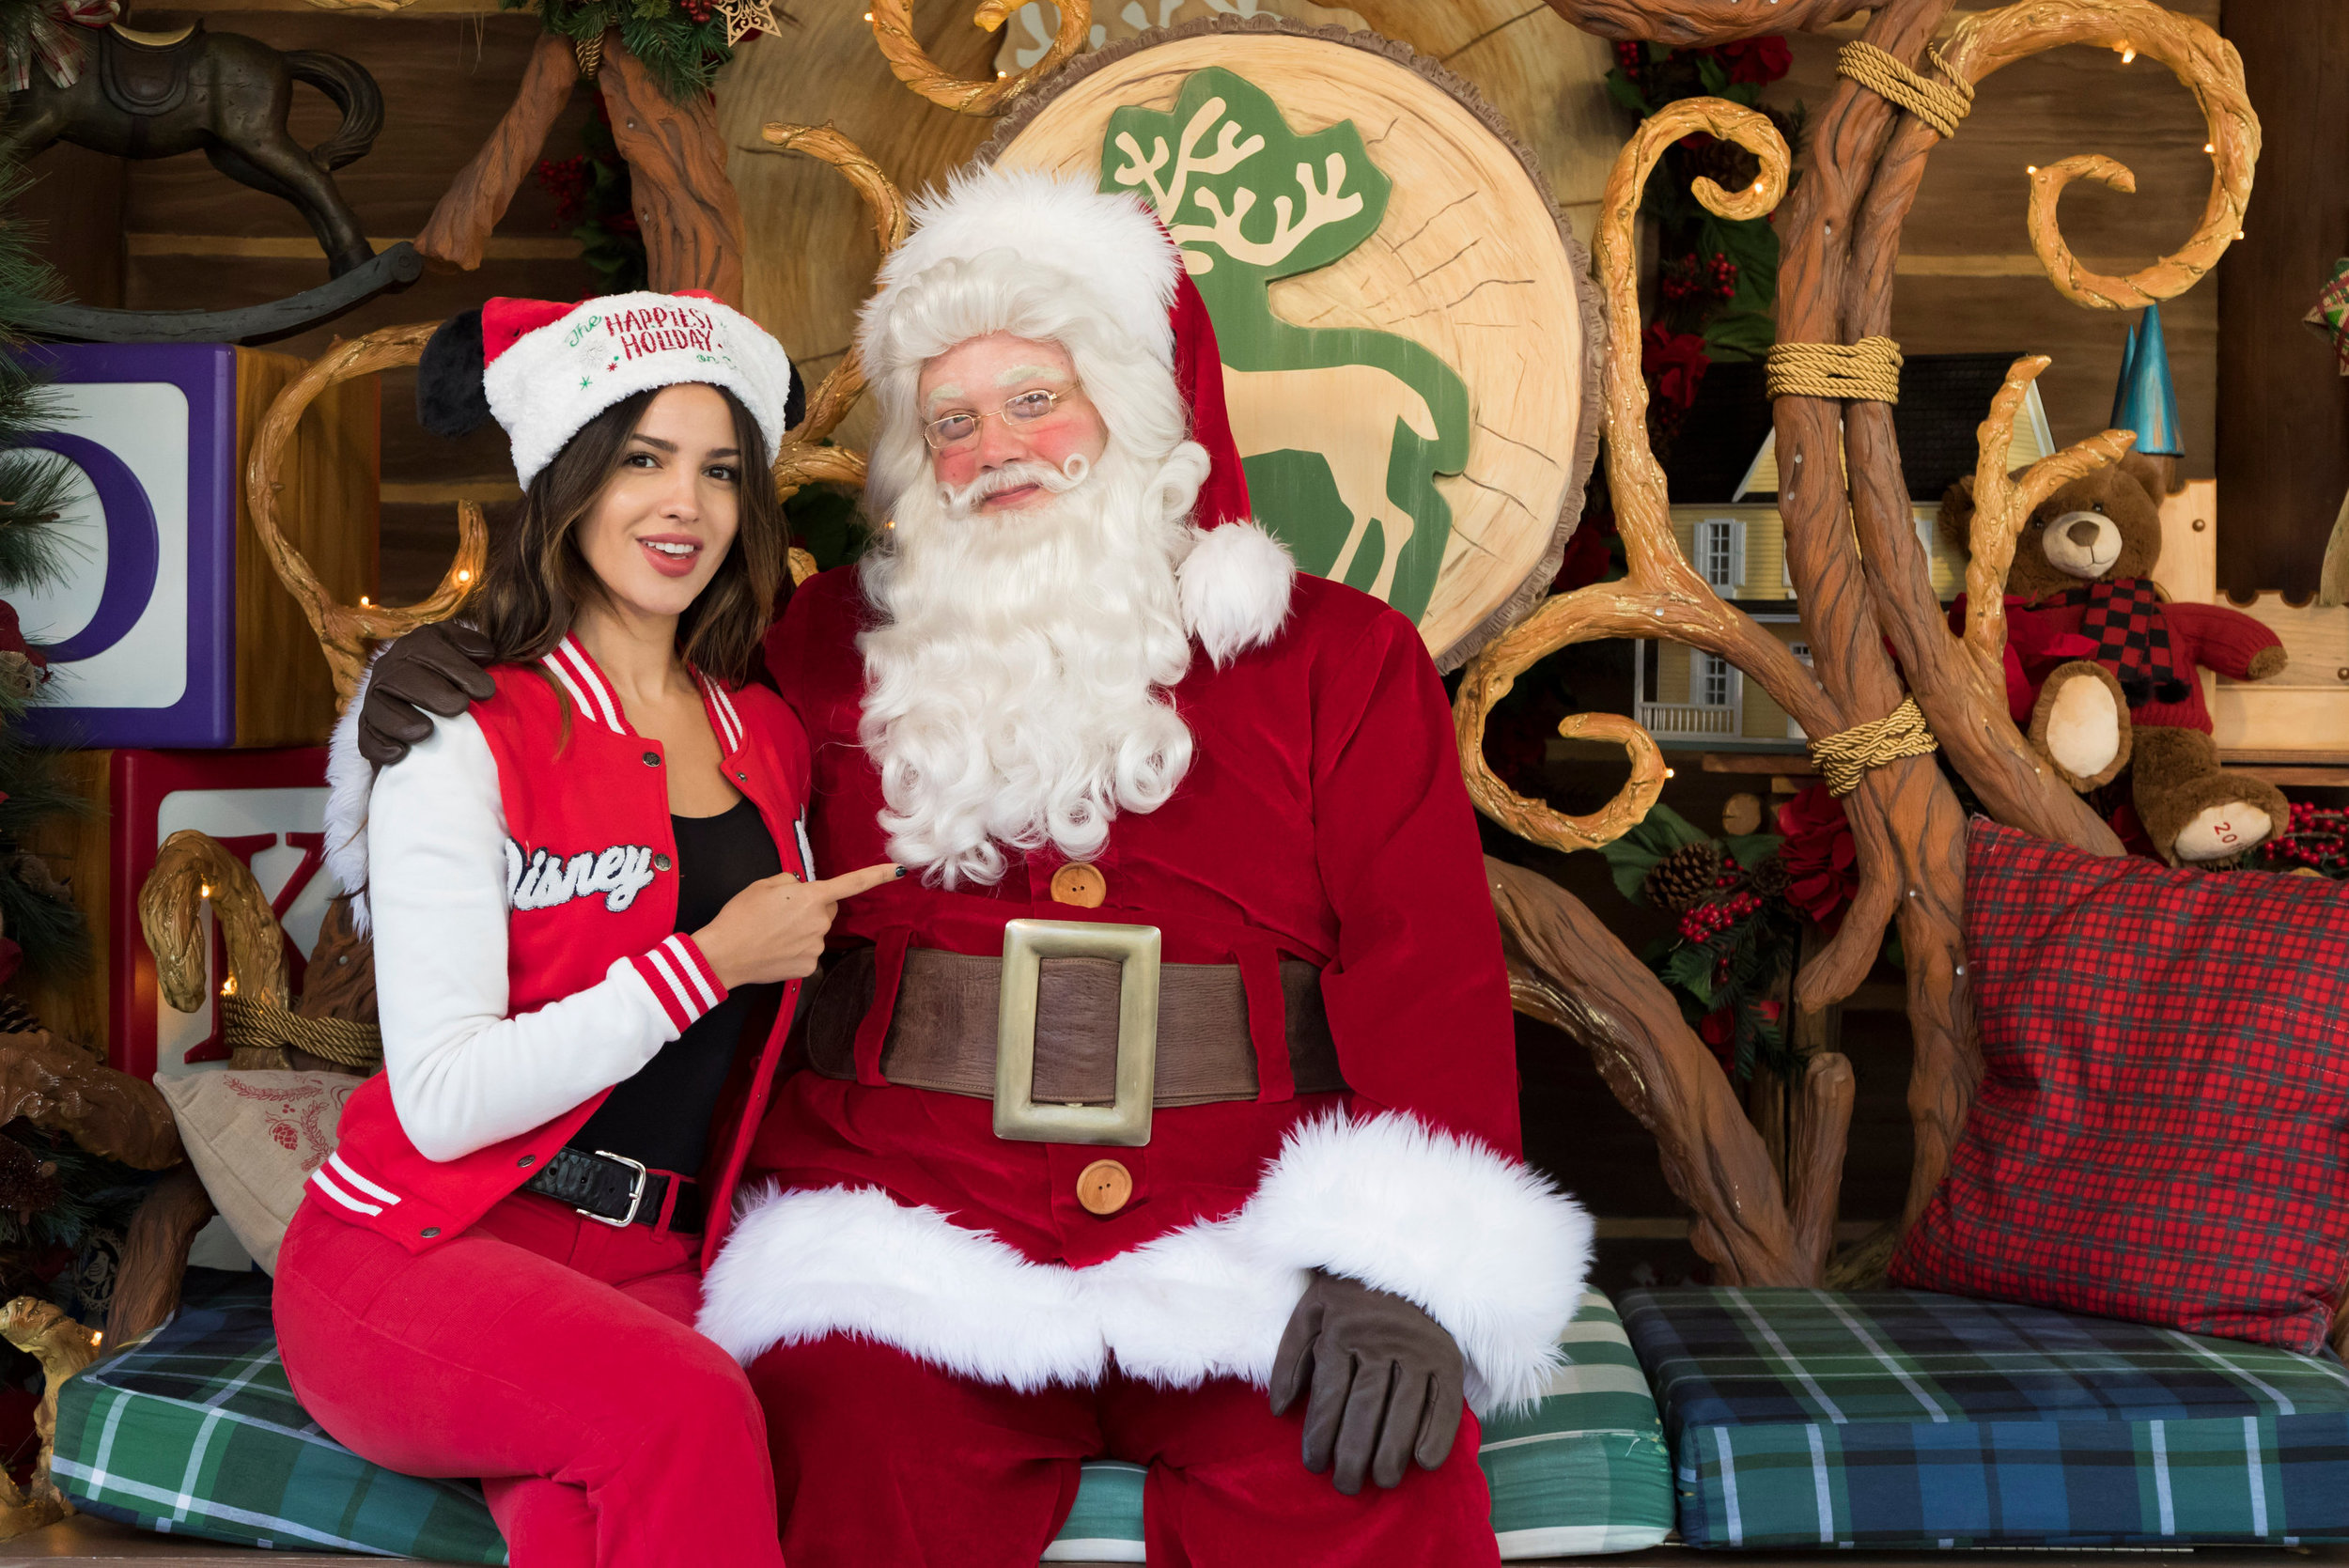 Actress Eiza Gonz�lez meets the jolly old elf himself, Santa Claus, at Disney California Adventure Park in Anaheim, Calif., during the holidays, Dec. 24, 2018. The holidays continue at the Disneyland Resort with Disney Festival of Holidays, �Believe � in Holiday Magic� fireworks spectacular and more, through Jan. 6, 2019. (Josh Sudock/Disneyland Resort)